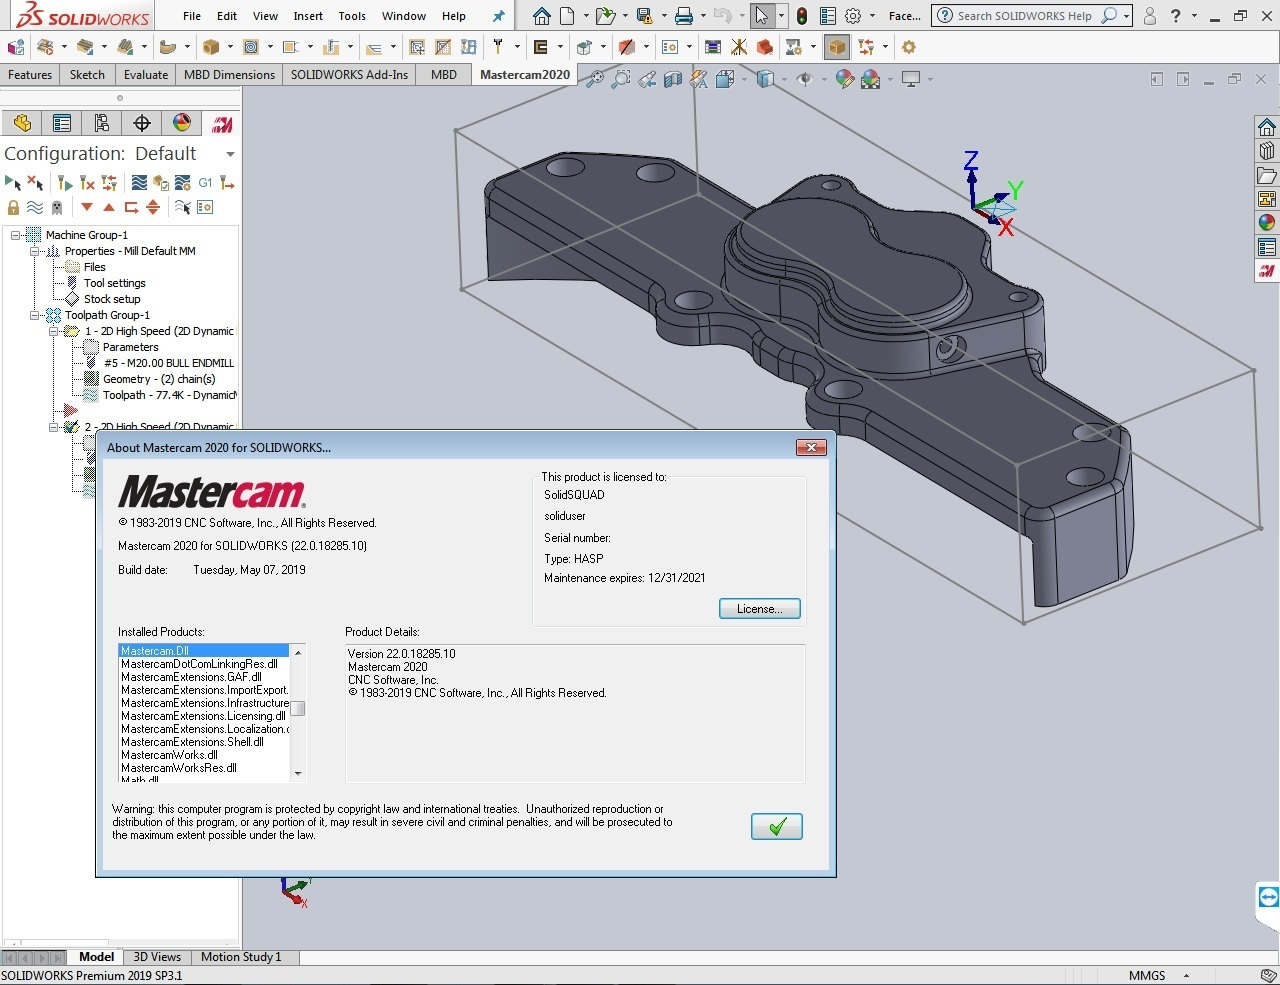 Download Mastercam 2020 for SolidWorks 2010-2019 Win64 full